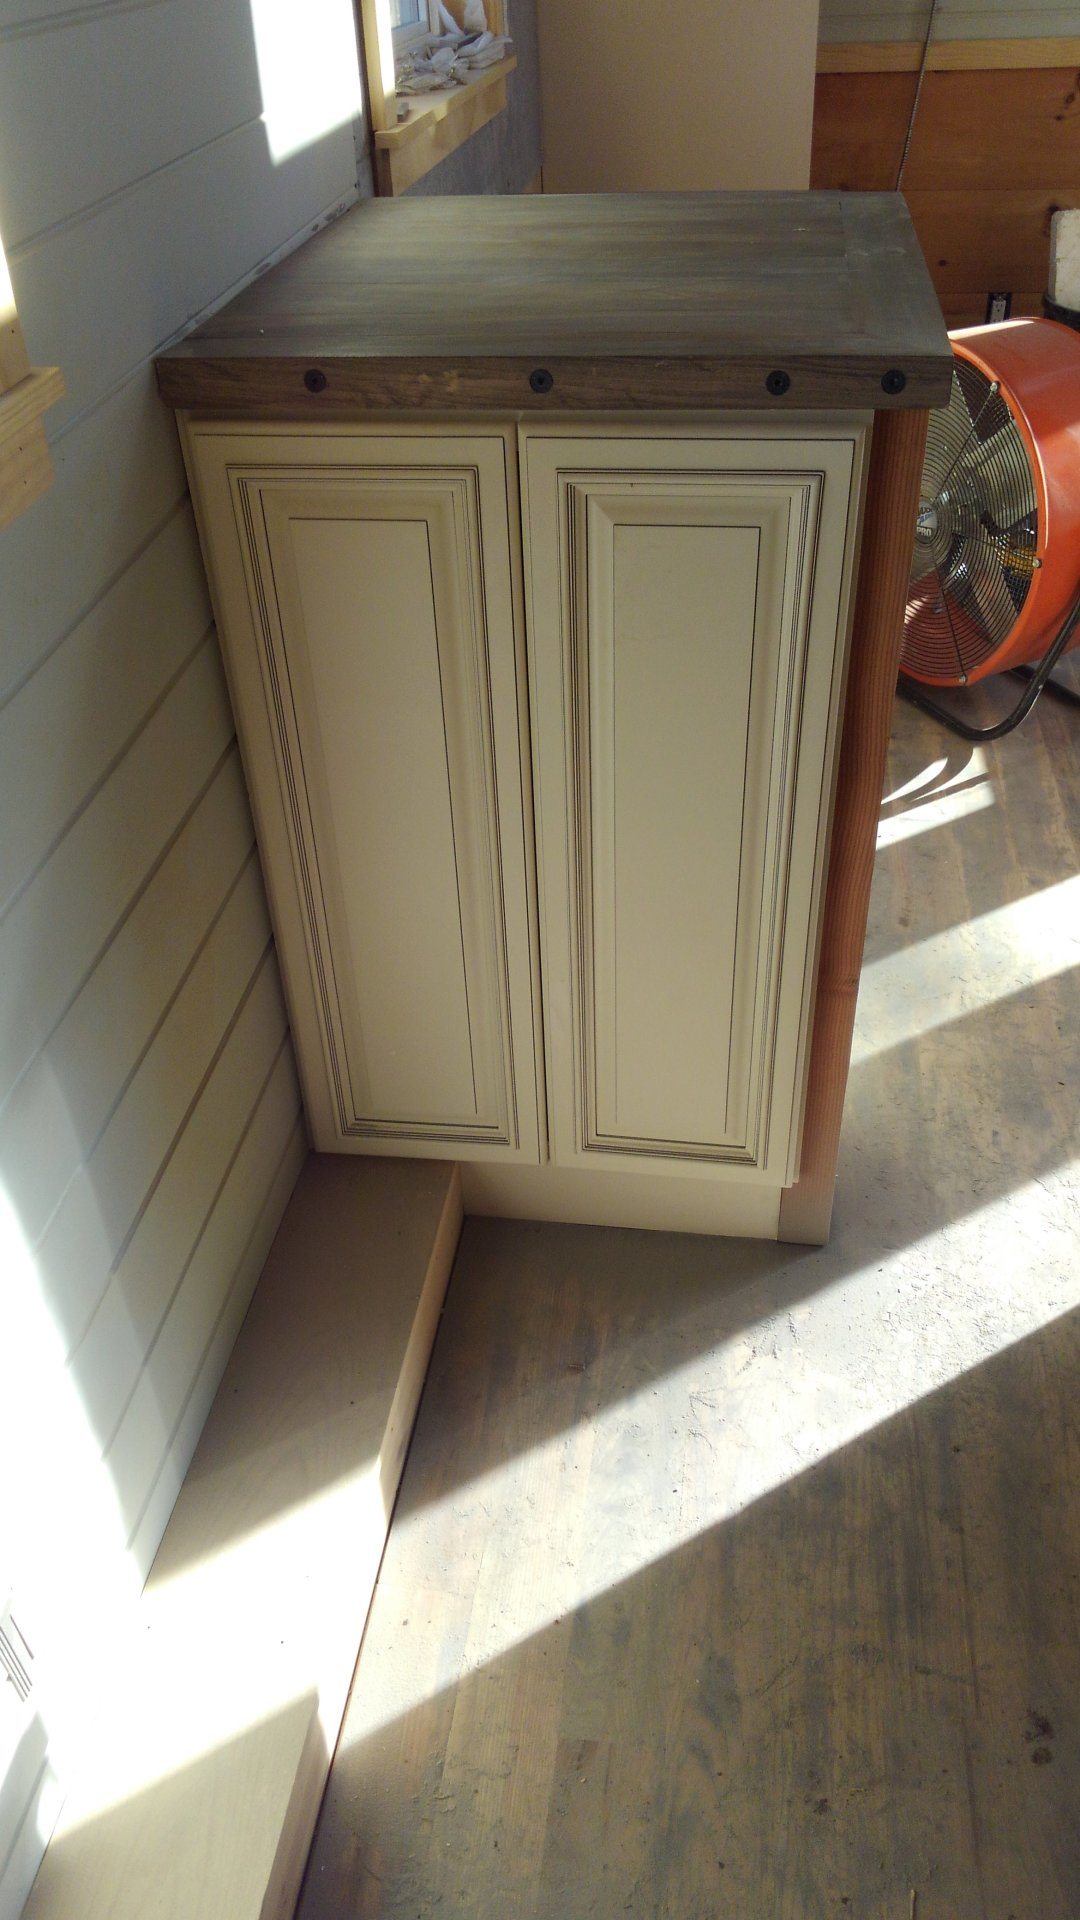 Washer/dryer cabinet